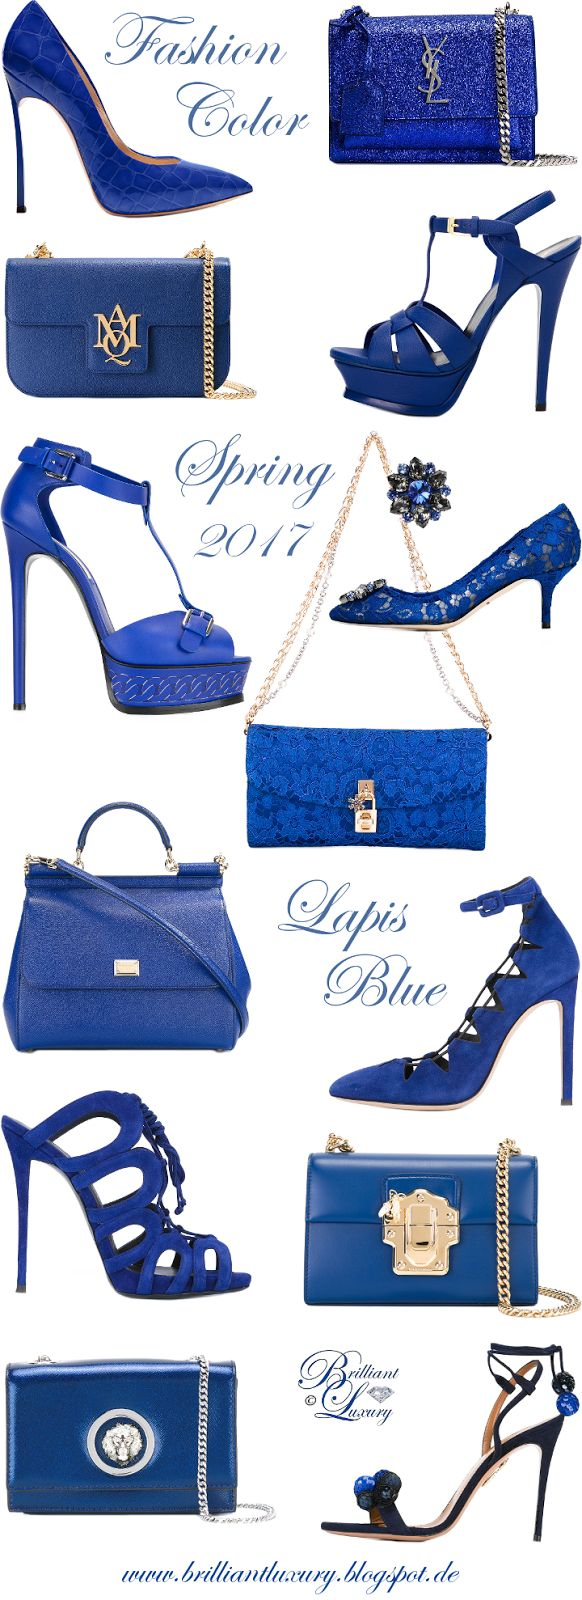 Brilliant Luxury by Emmy DE ♦ Fashion Color Spring 2017 ~ lapis blue